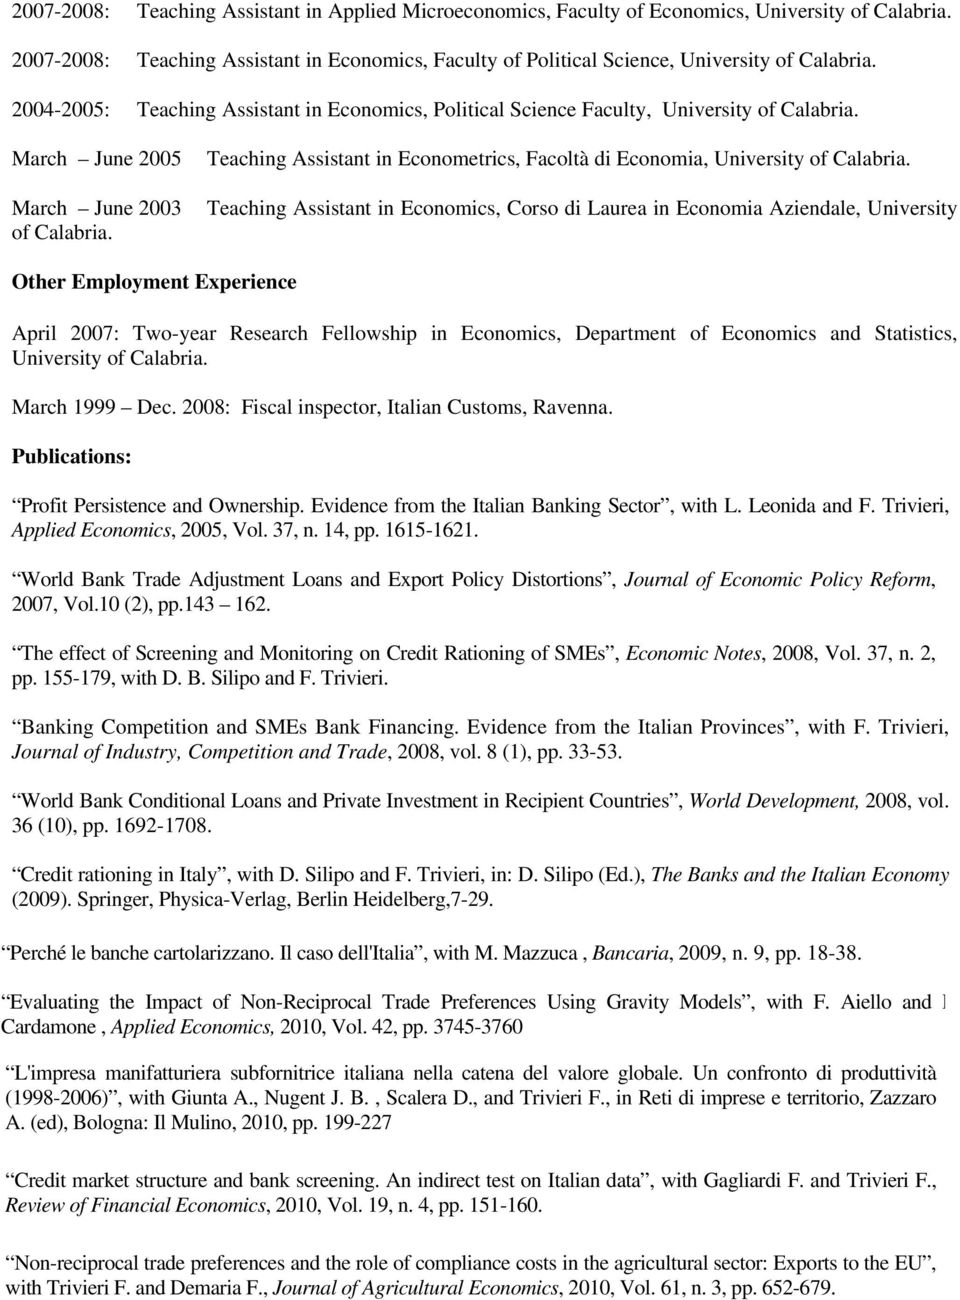 Teaching Assistant in Econometrics, Facoltà di Economia, University of Calabria.